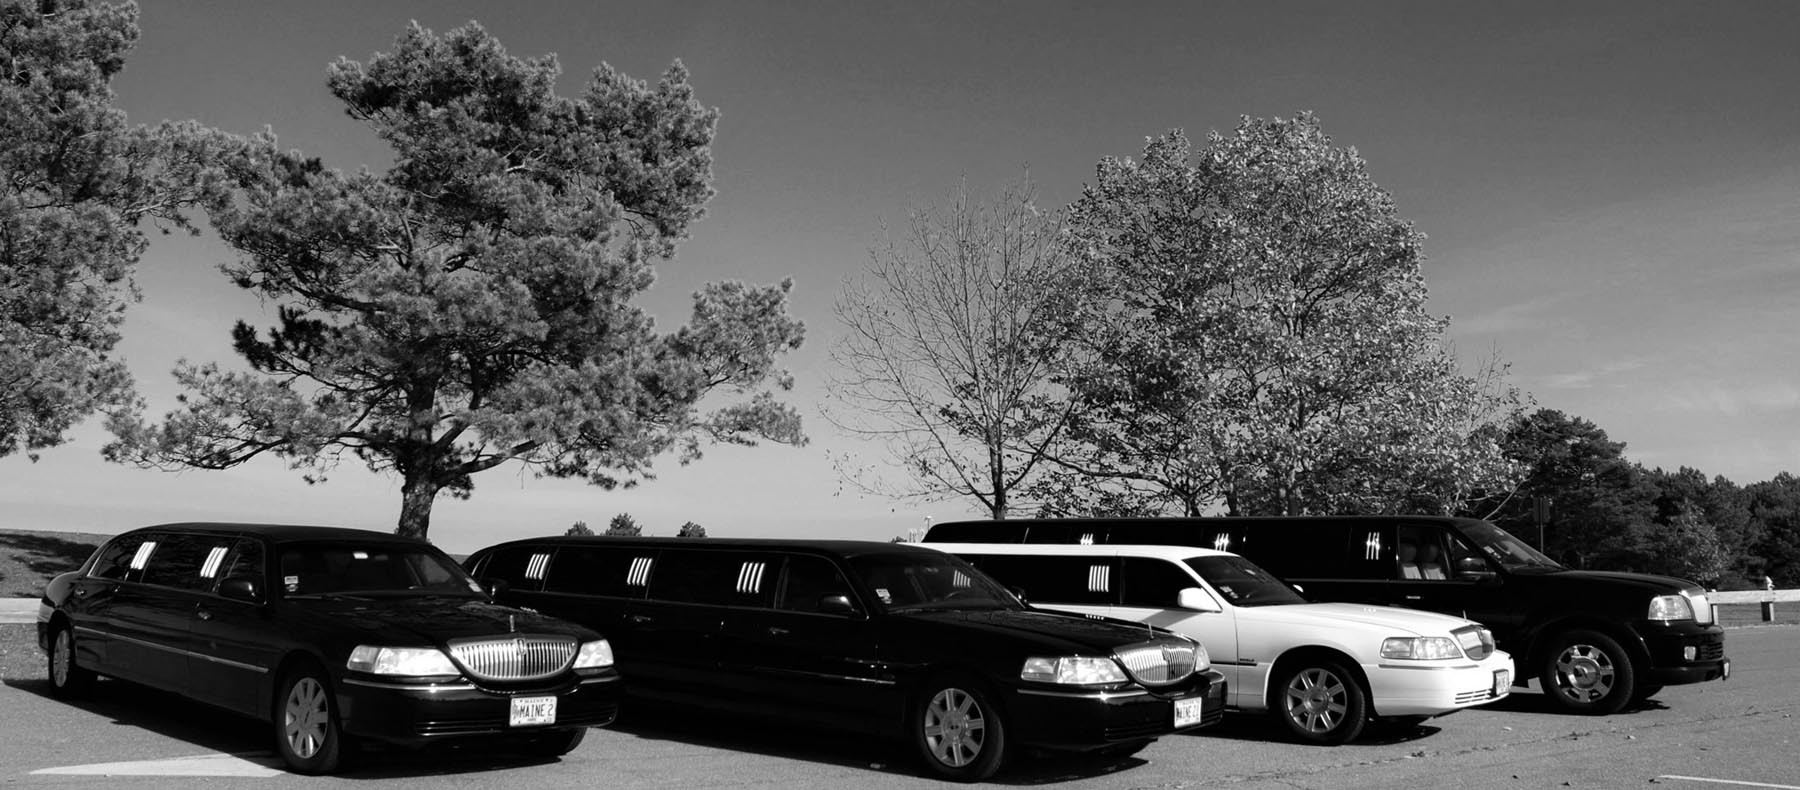 Maine Limo + Lilley's Limousine